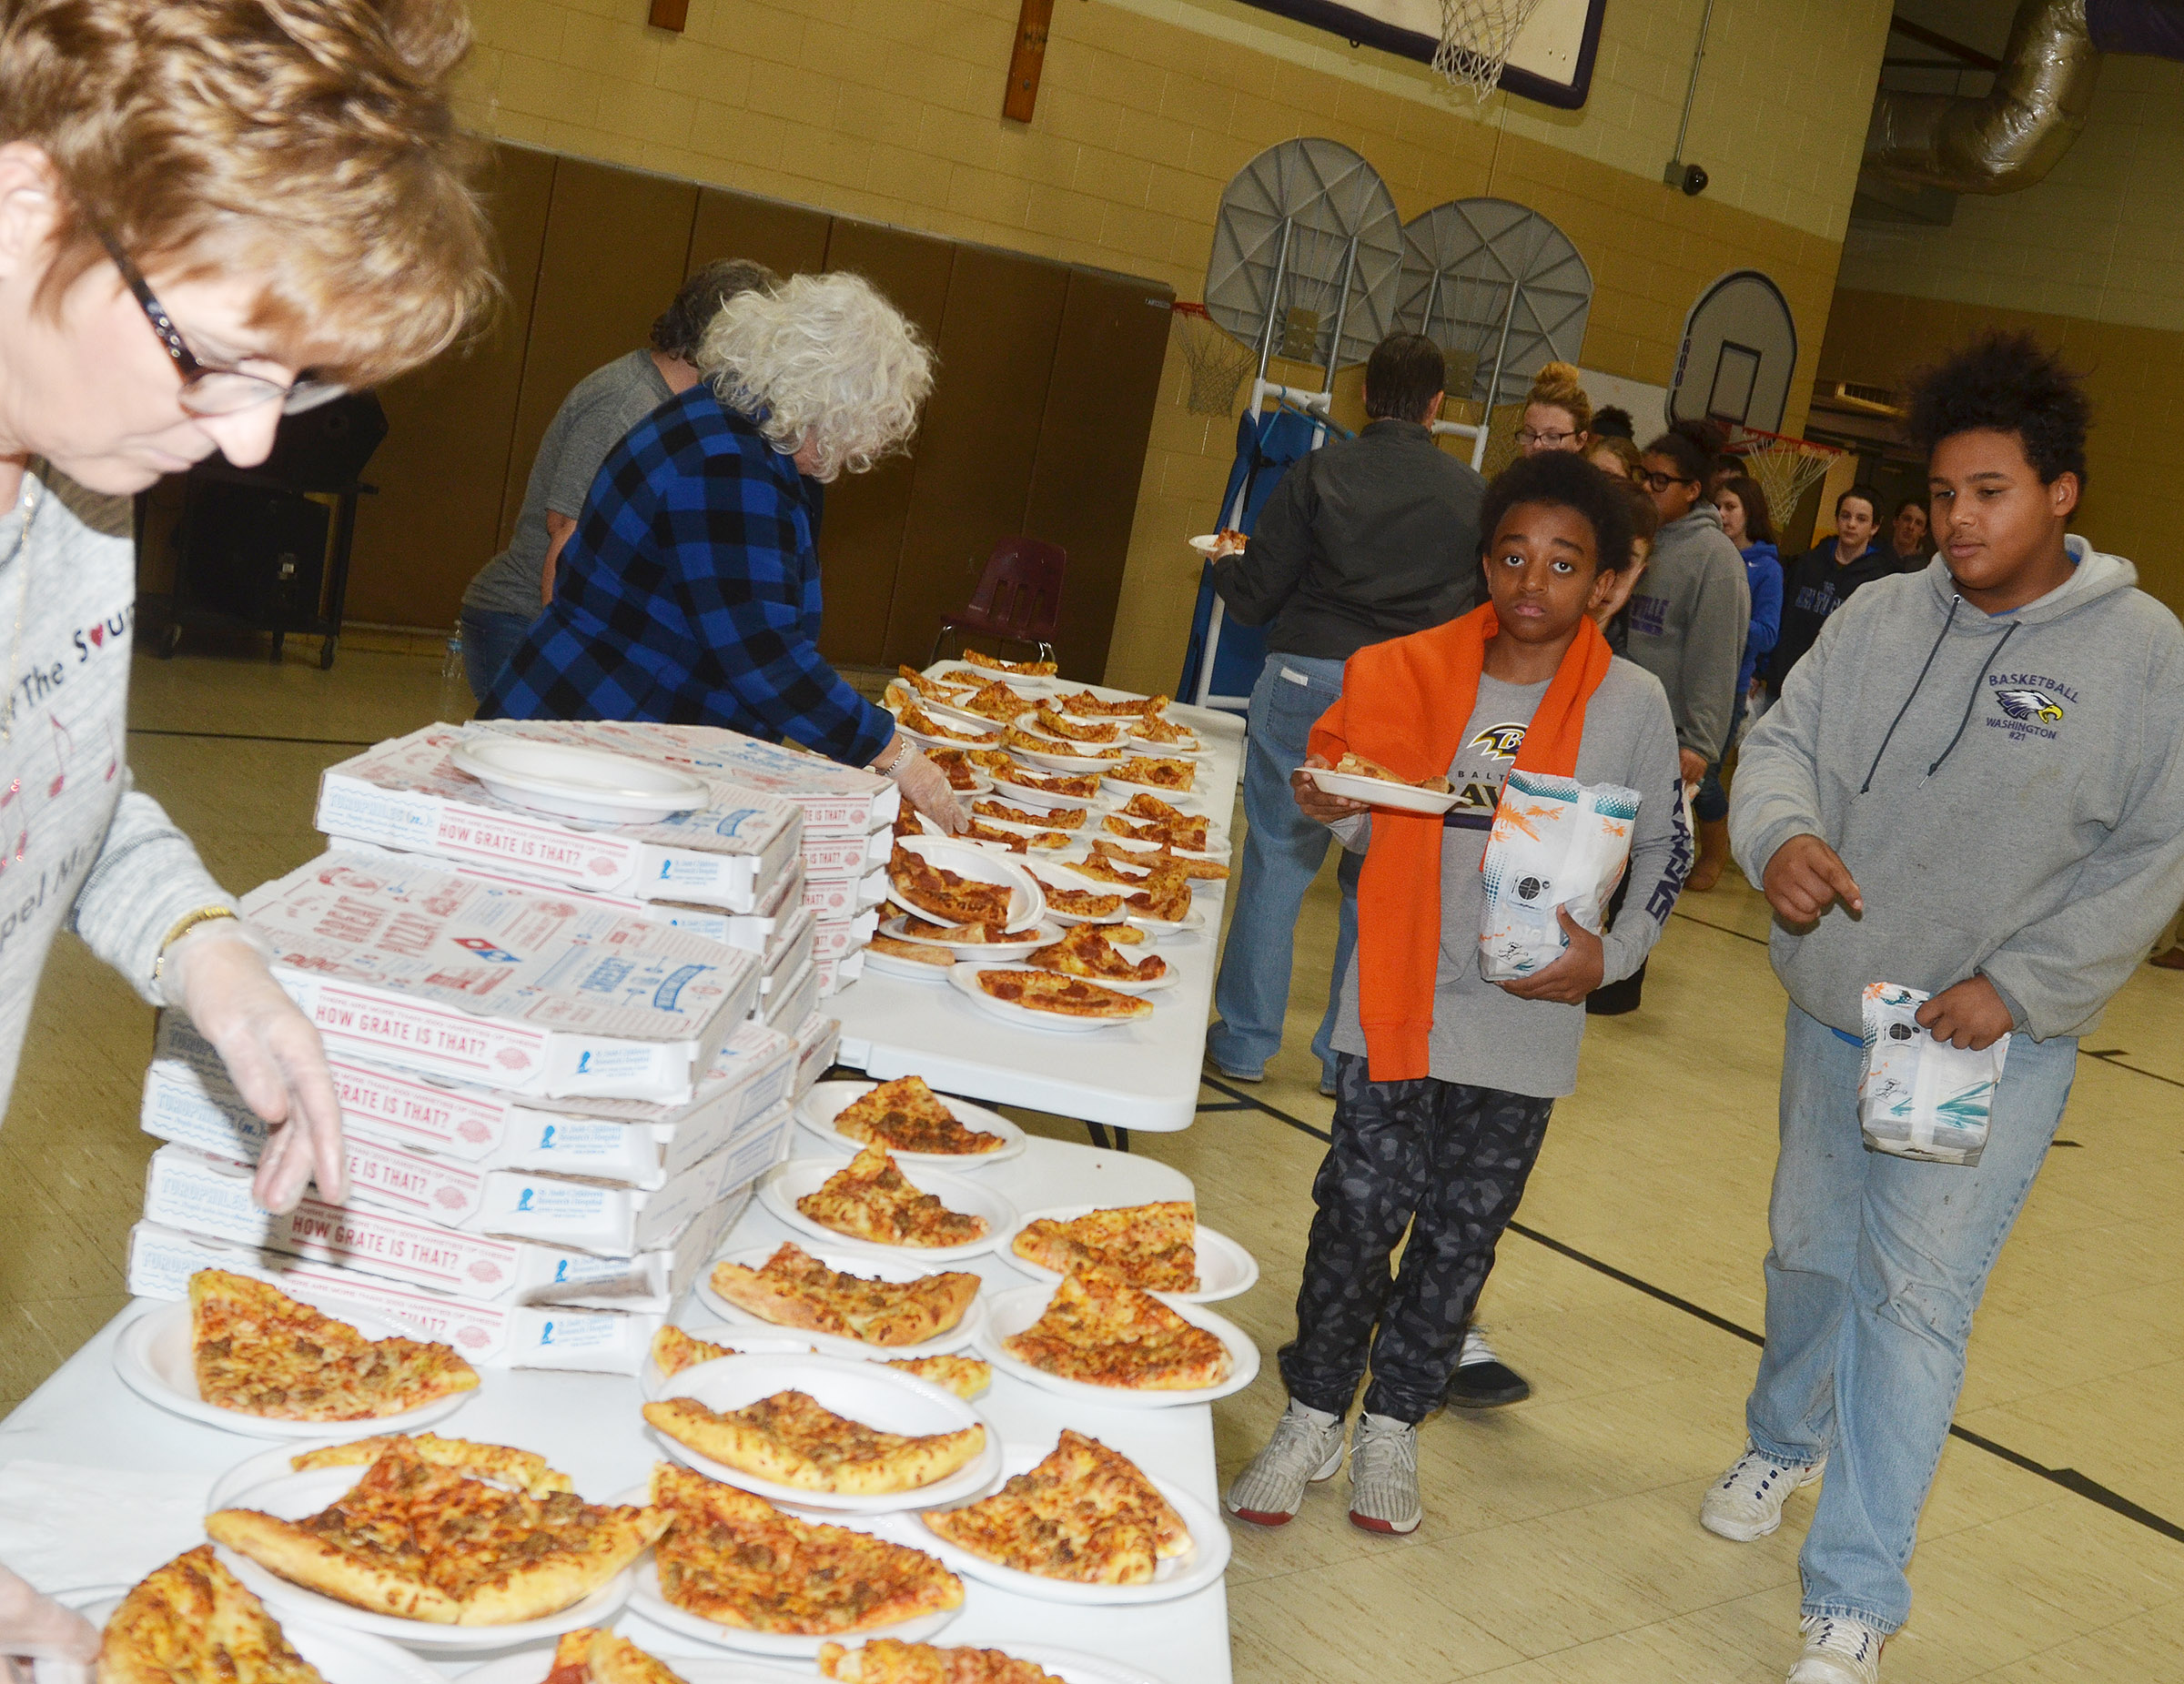 CMS seventh-graders Zamar Owens, at left, and J.T. Washington are served pizza.